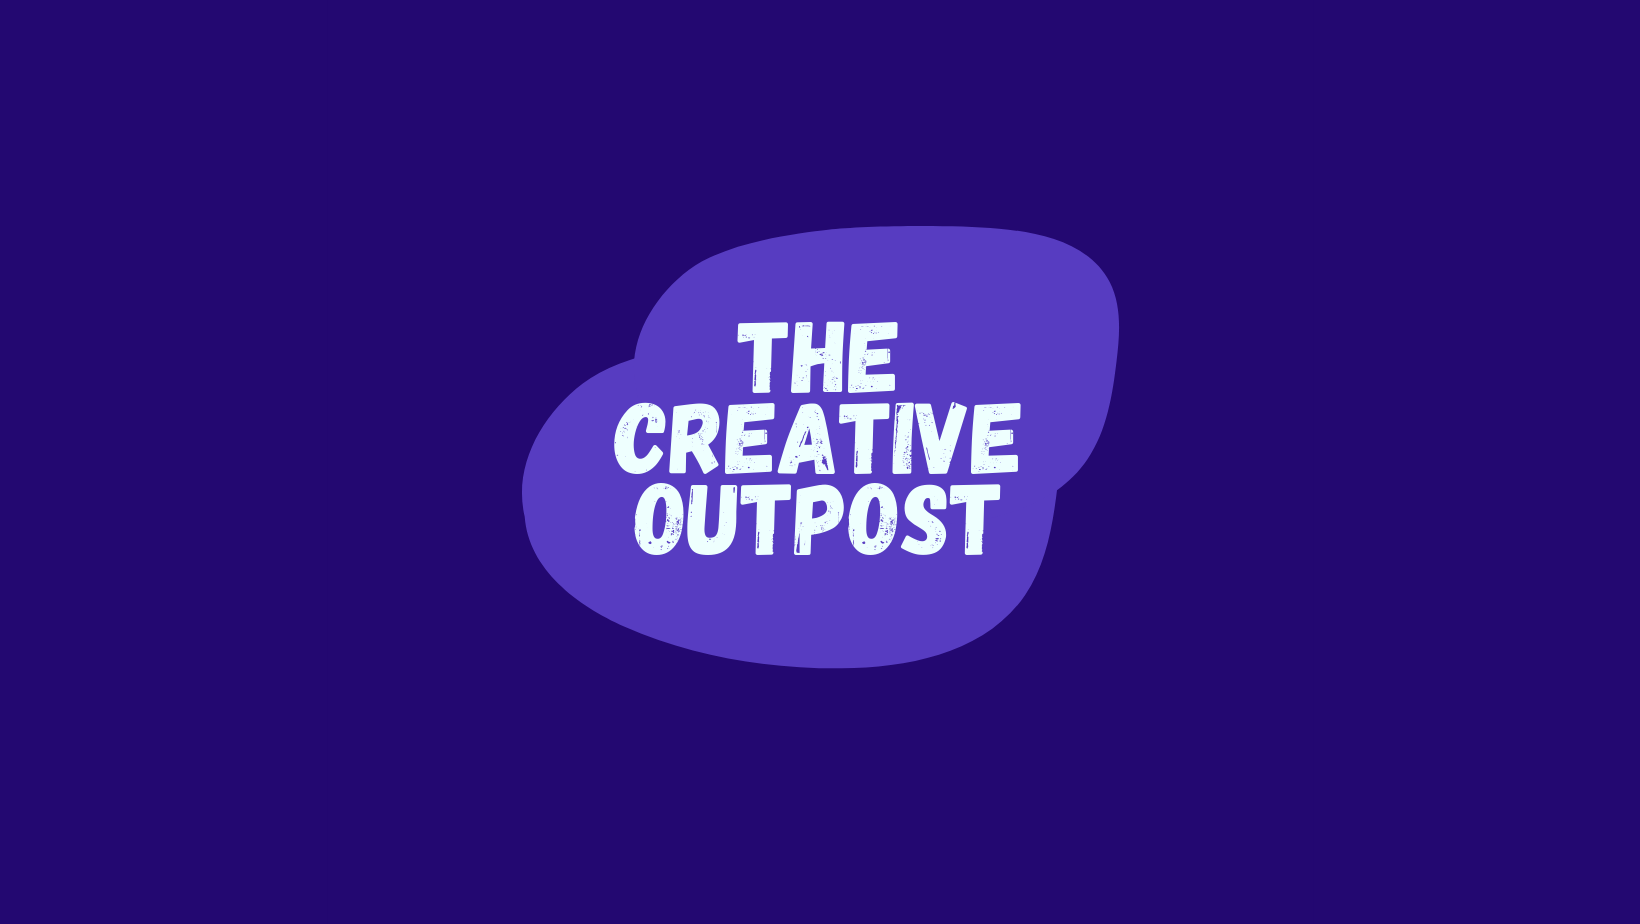 Introducing the Creative Outpost and the Fractured Atlas Entrepreneur-in-Residence Initiatives: New Ways for Artists to Connect